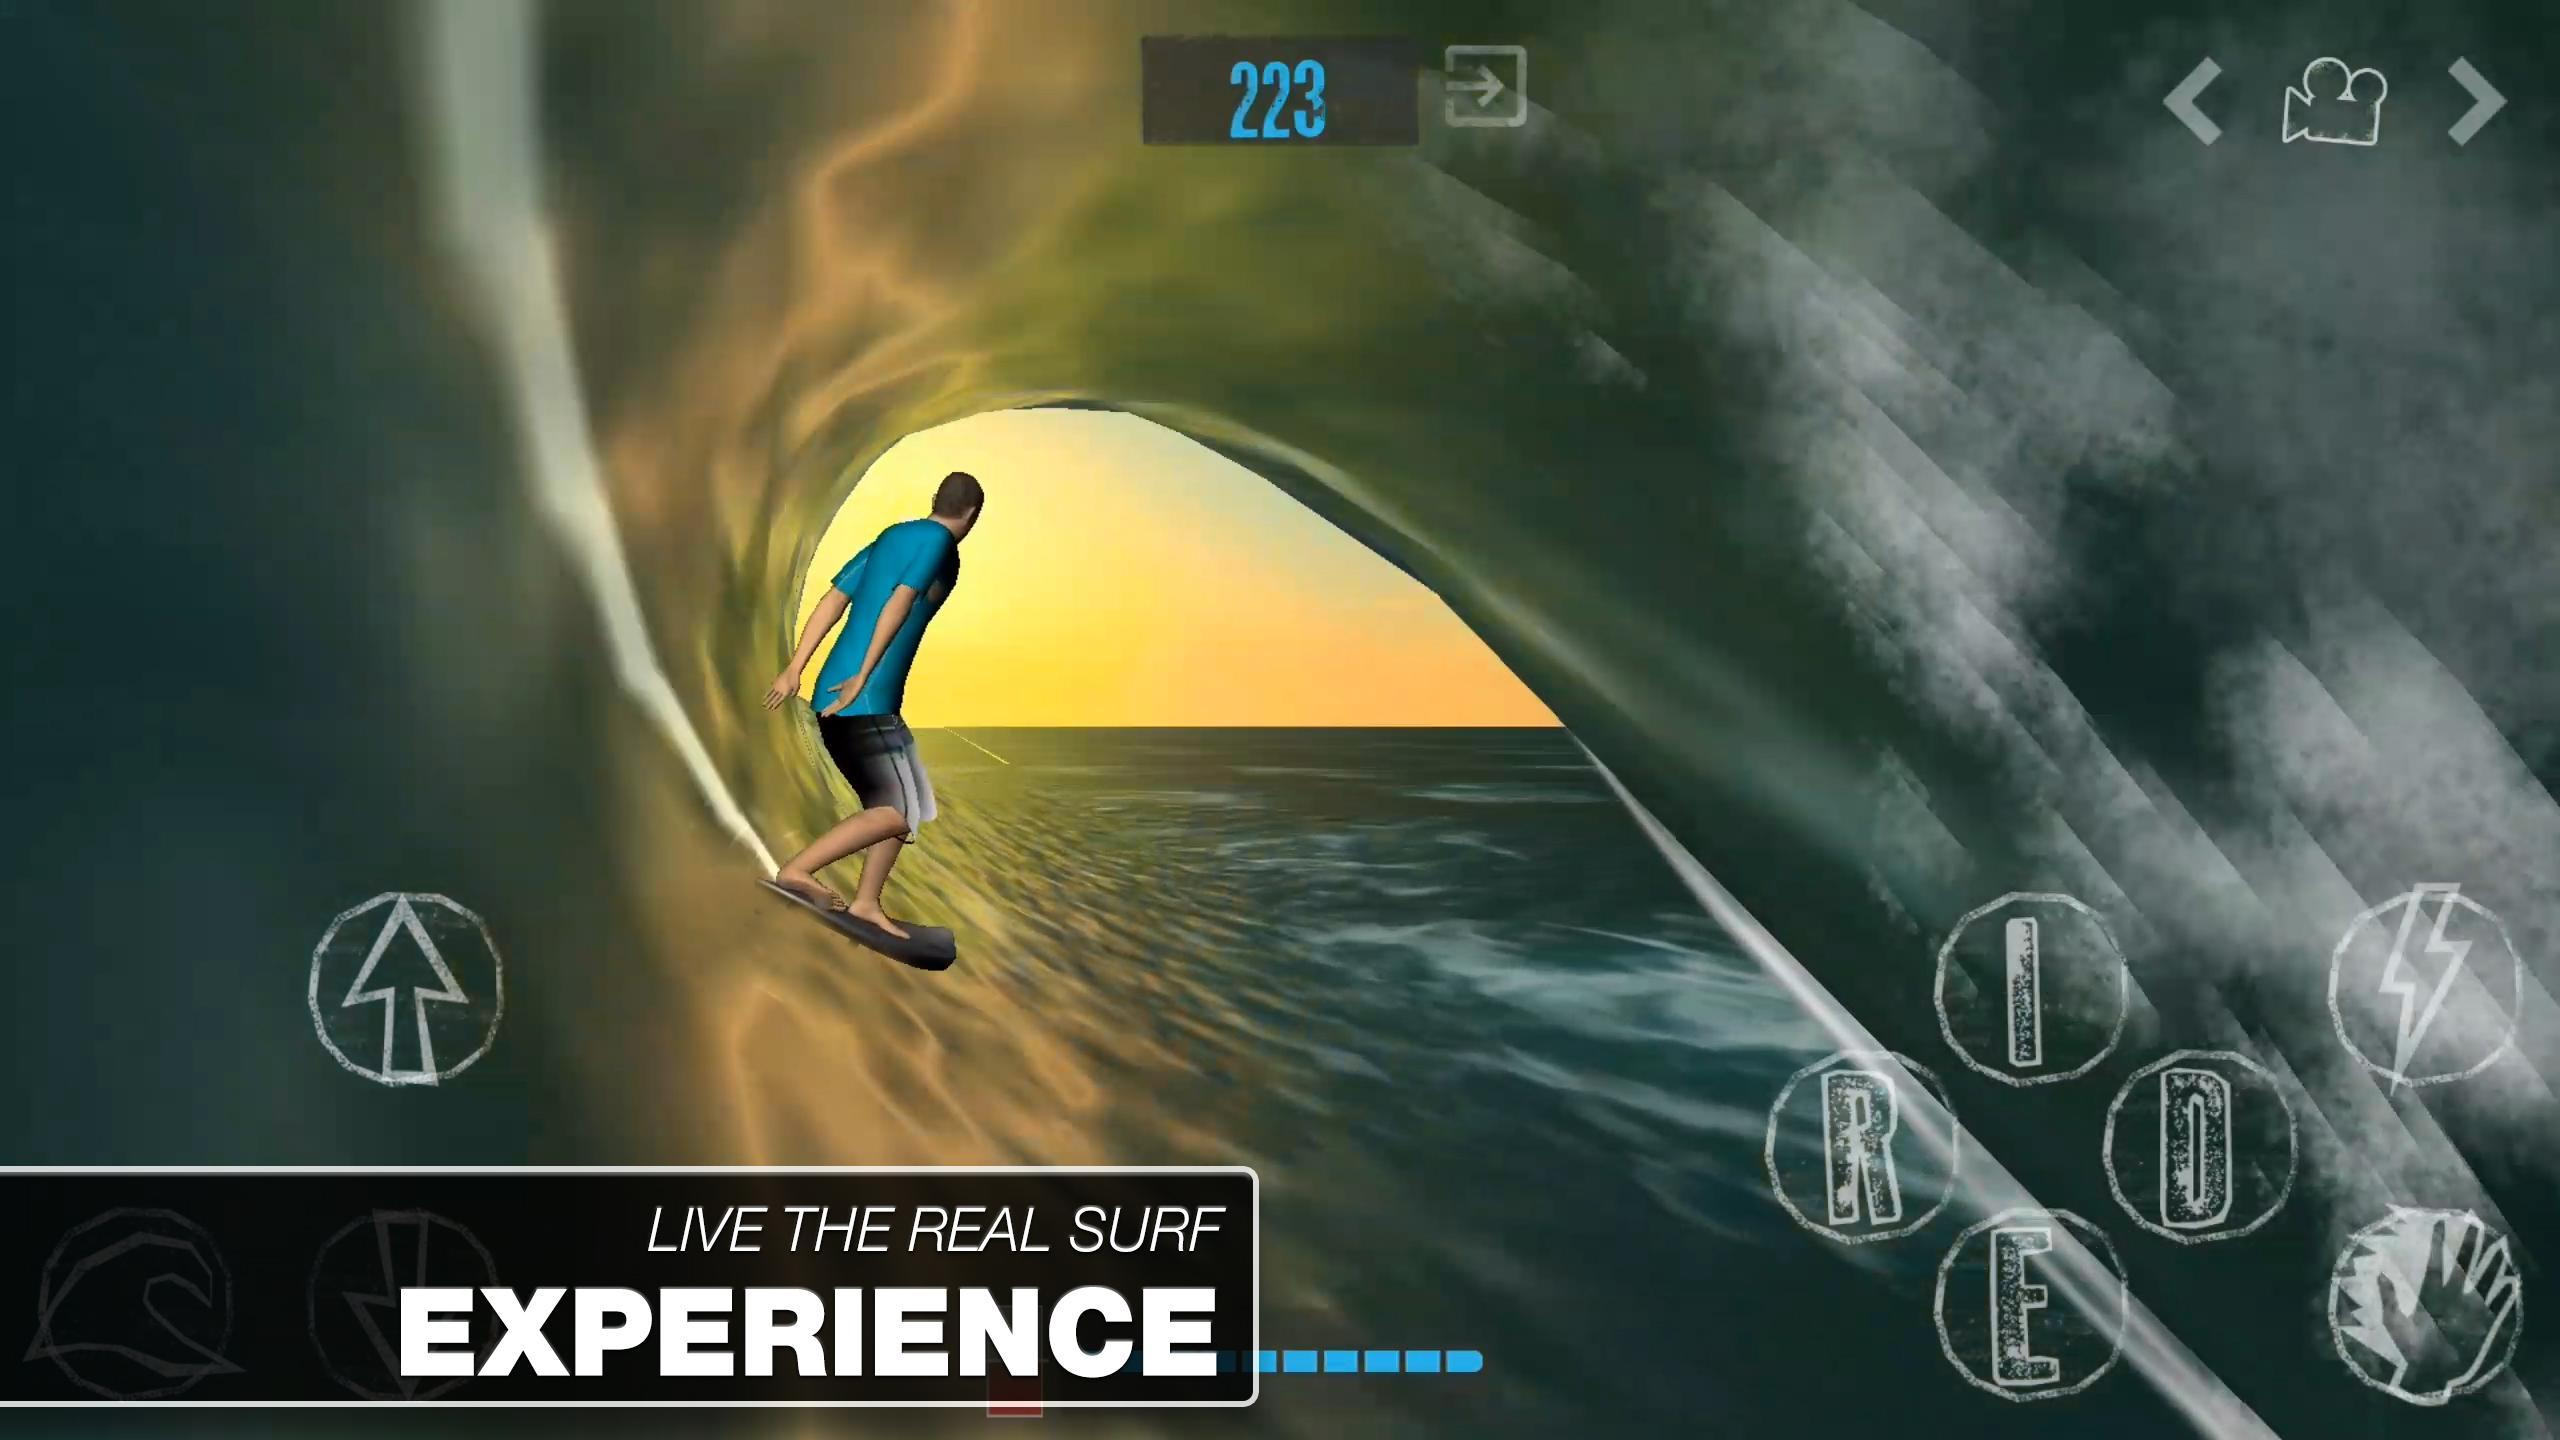 The Journey - Surf Game for Android - APK Download